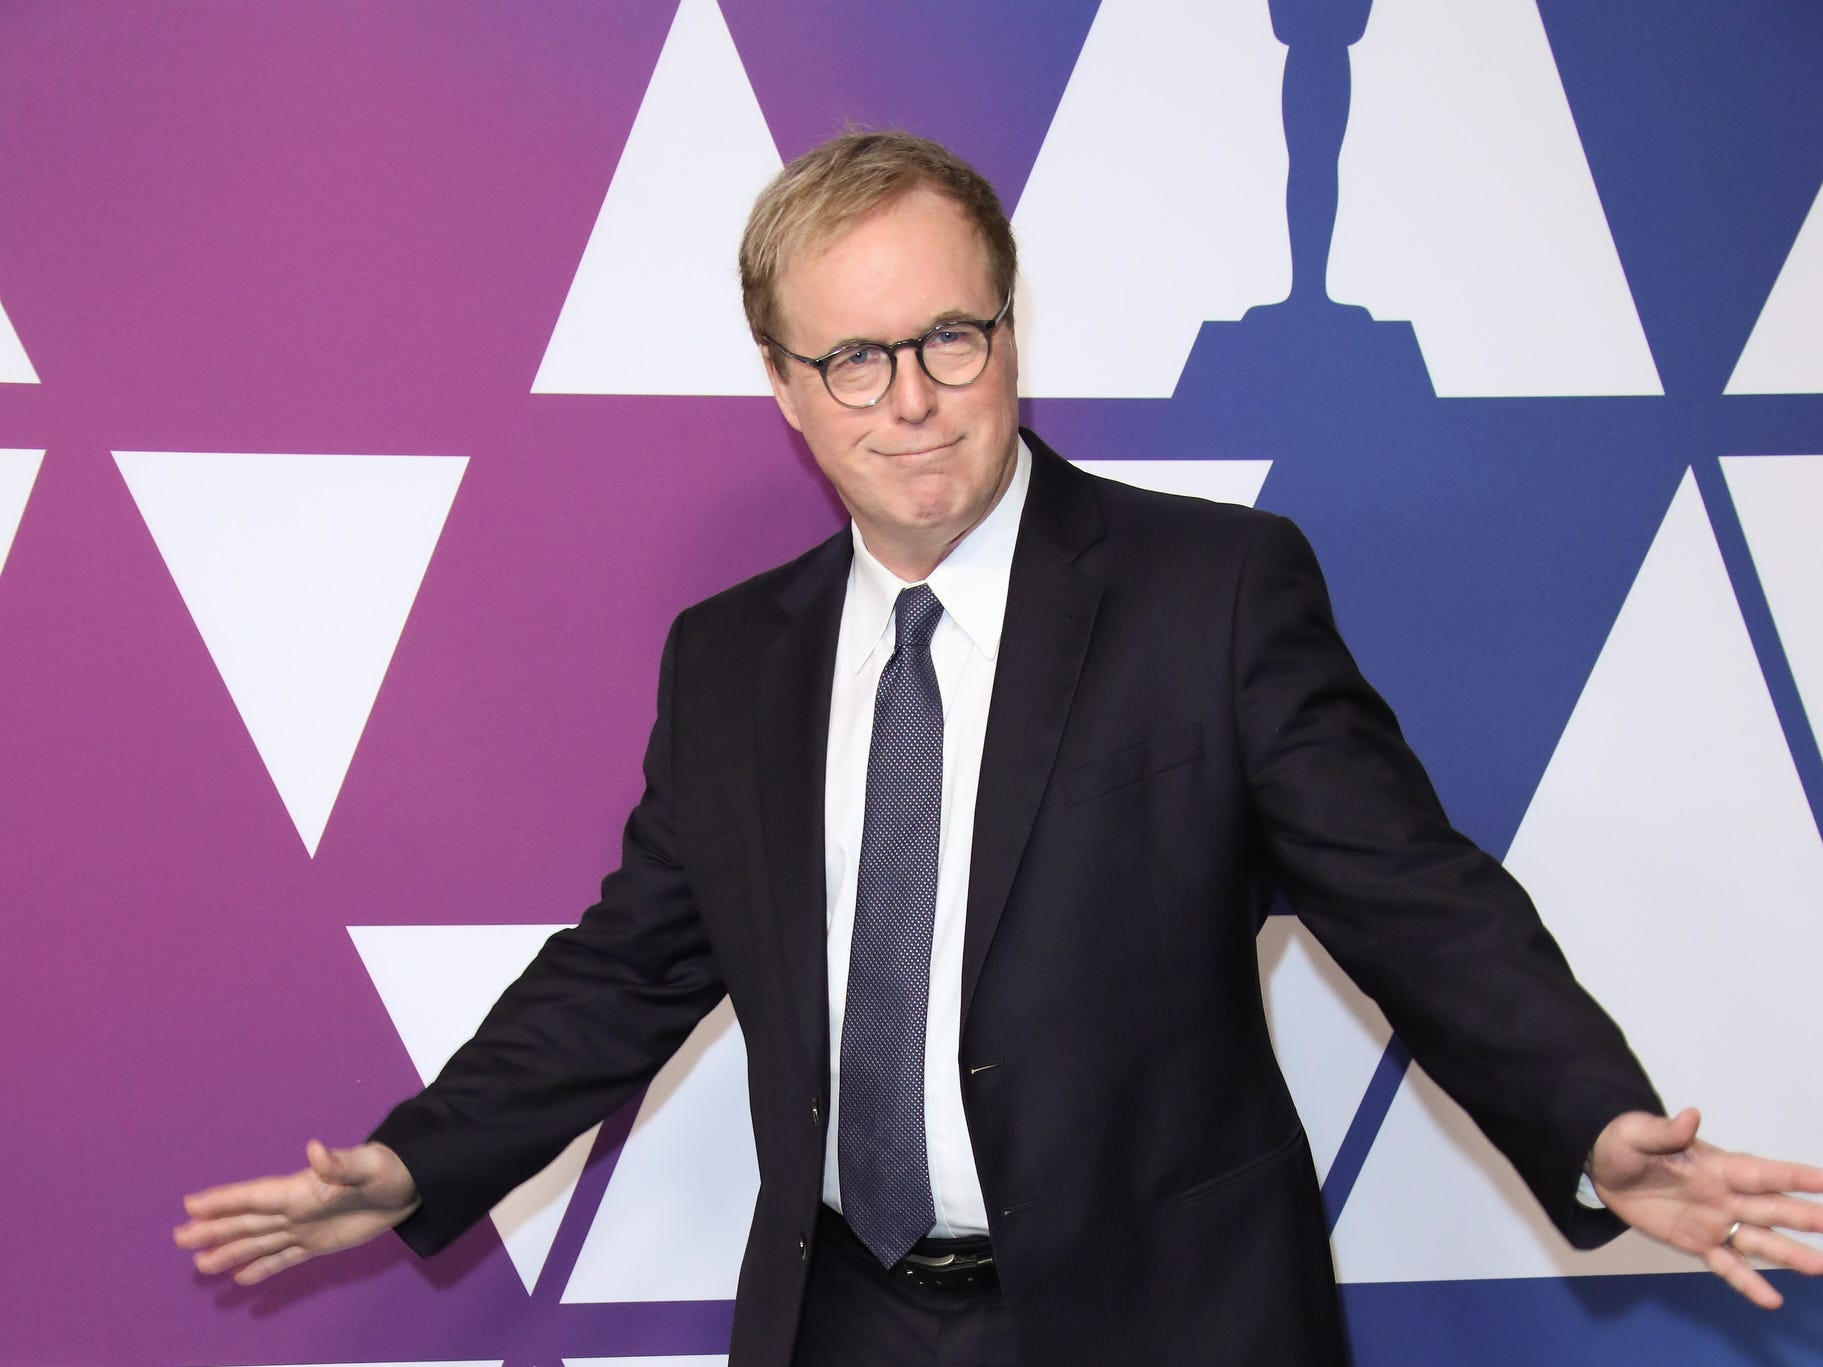 2/4/19 11:28:16 AM -- Beverly Hills, CA, U.S.A  -- Brad Bird arrives at the 91st Oscar nominees luncheon at the Beverly Hilton Hotel in Beverly Hills, CA--    Photo by Dan MacMedan, USA TODAY contract photographer ORG XMIT:  DM 137796 OscarNomineesLun 2/4/ [Via MerlinFTP Drop]